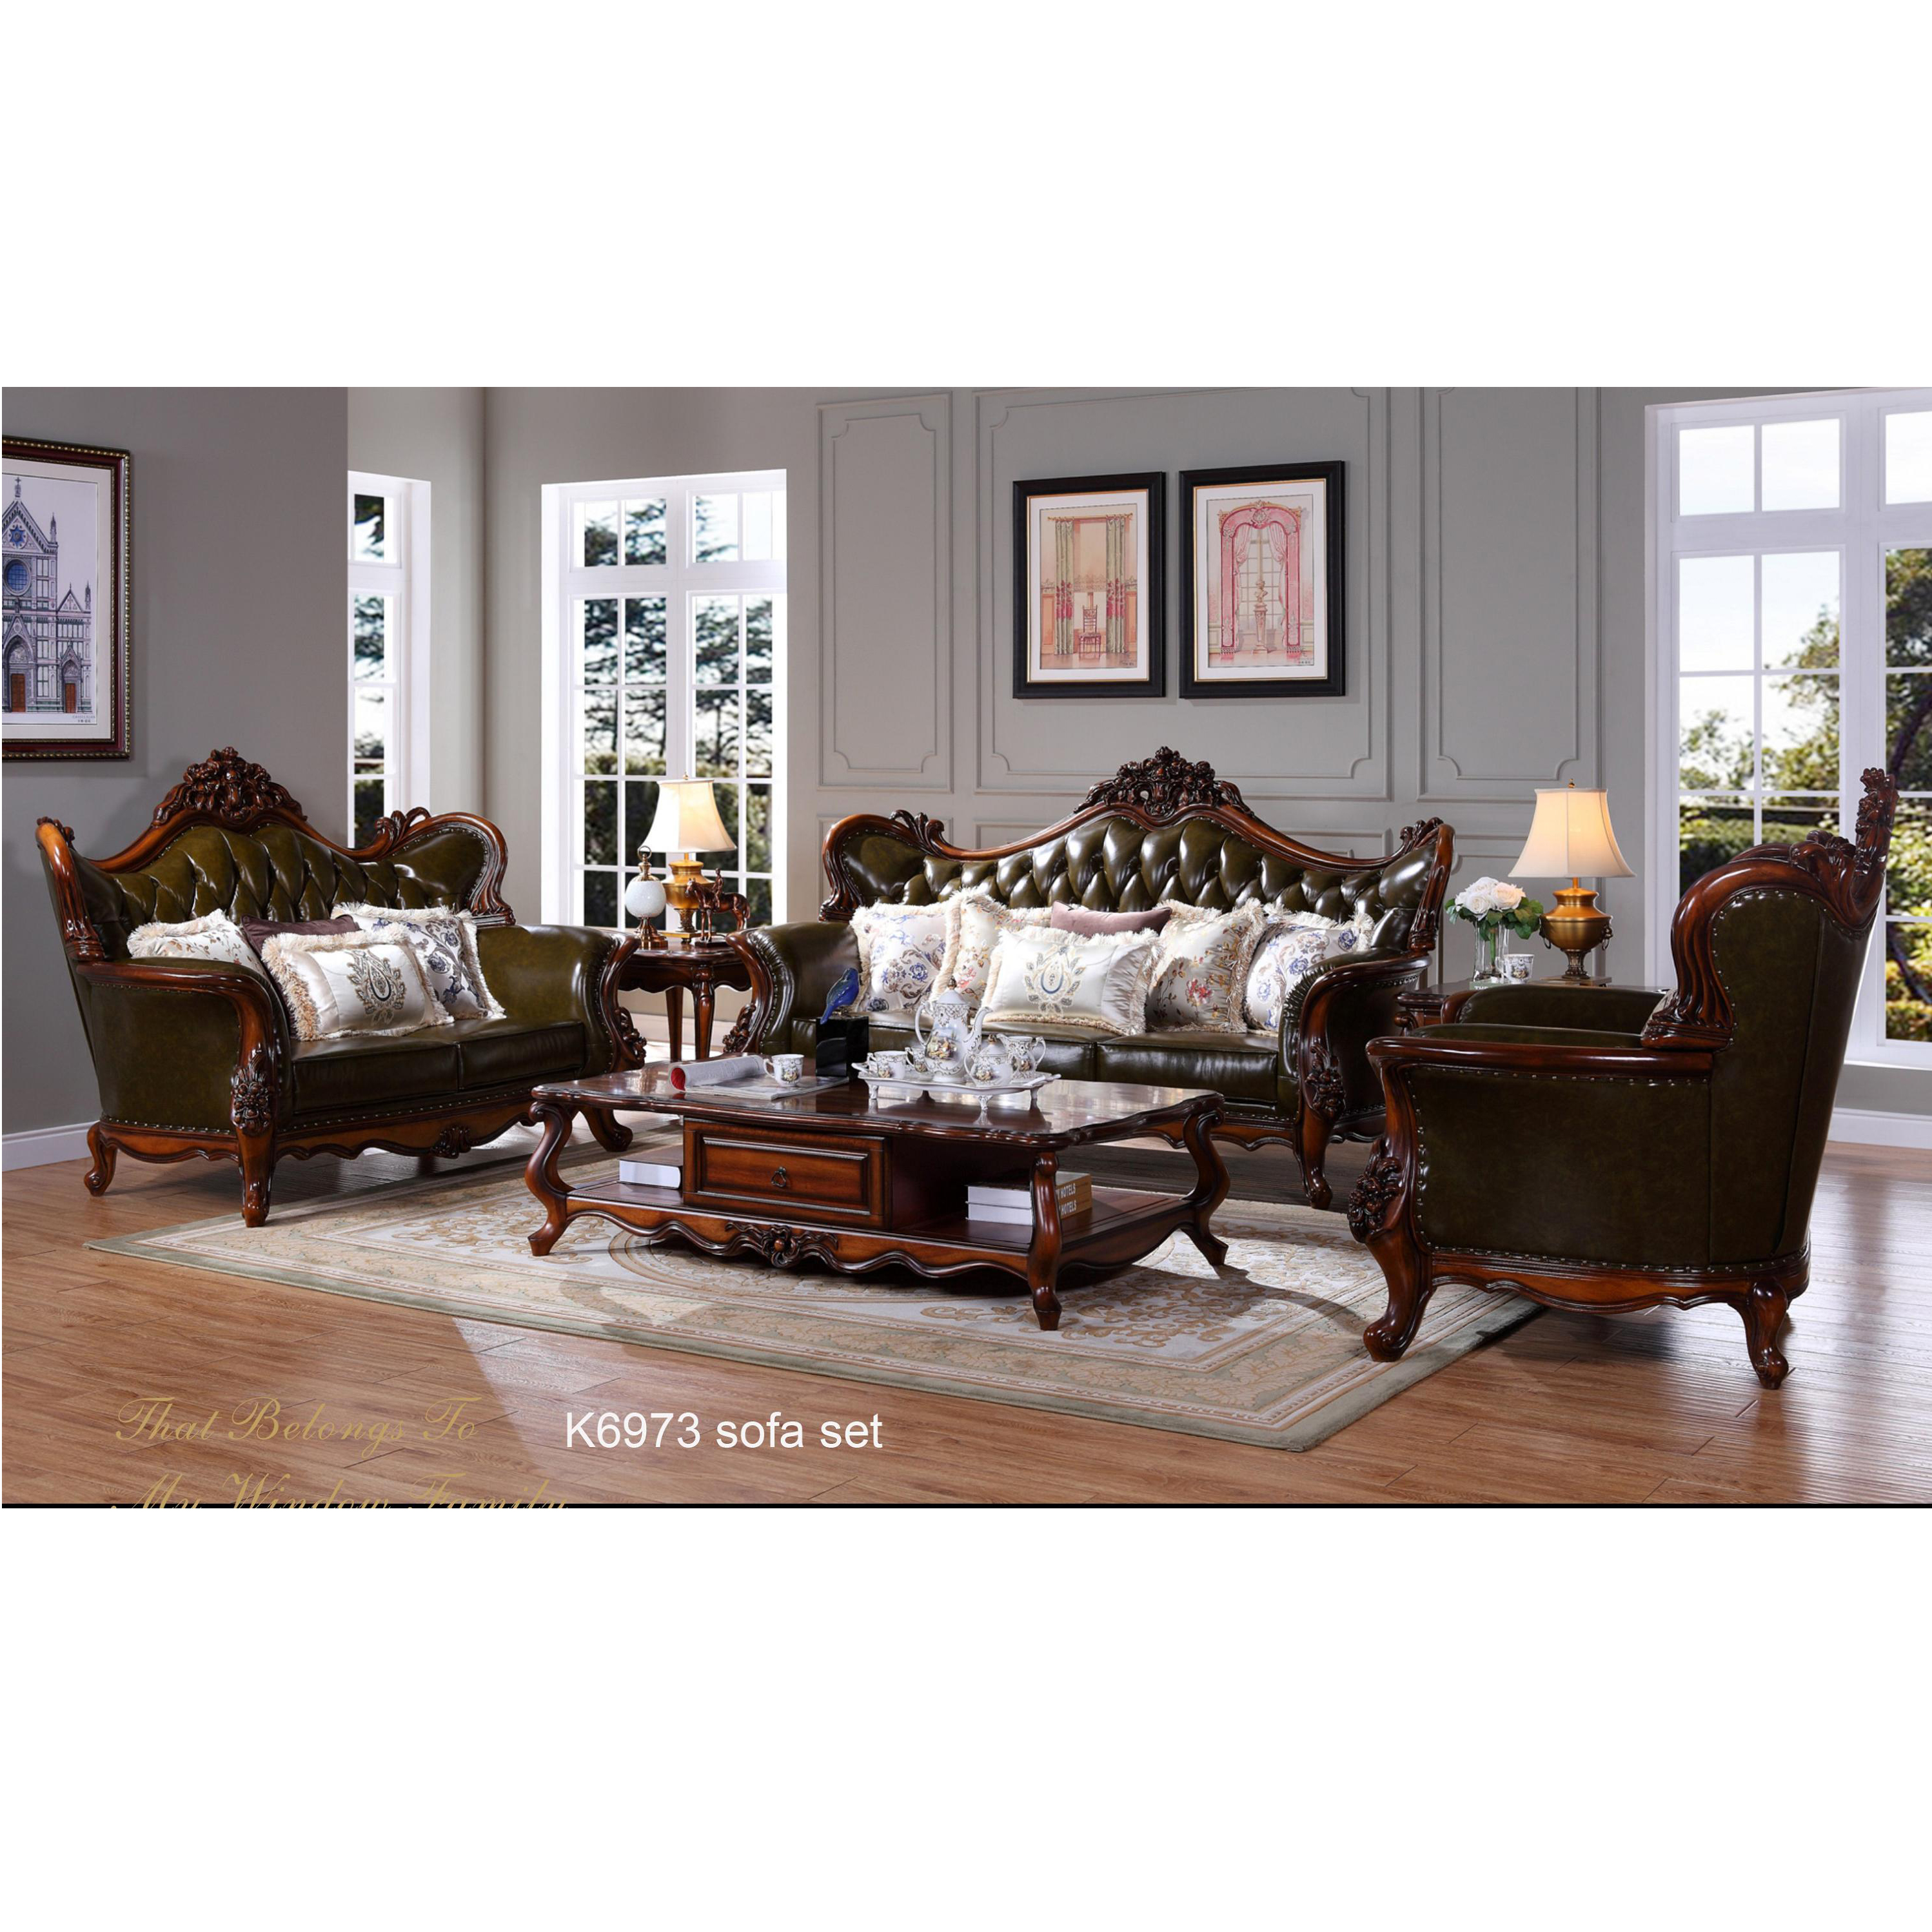 K6973 Hot American Style Rustic Chesterfield Light Leather On Tuft Antique Living Room Sofa Set Green Real Vintage